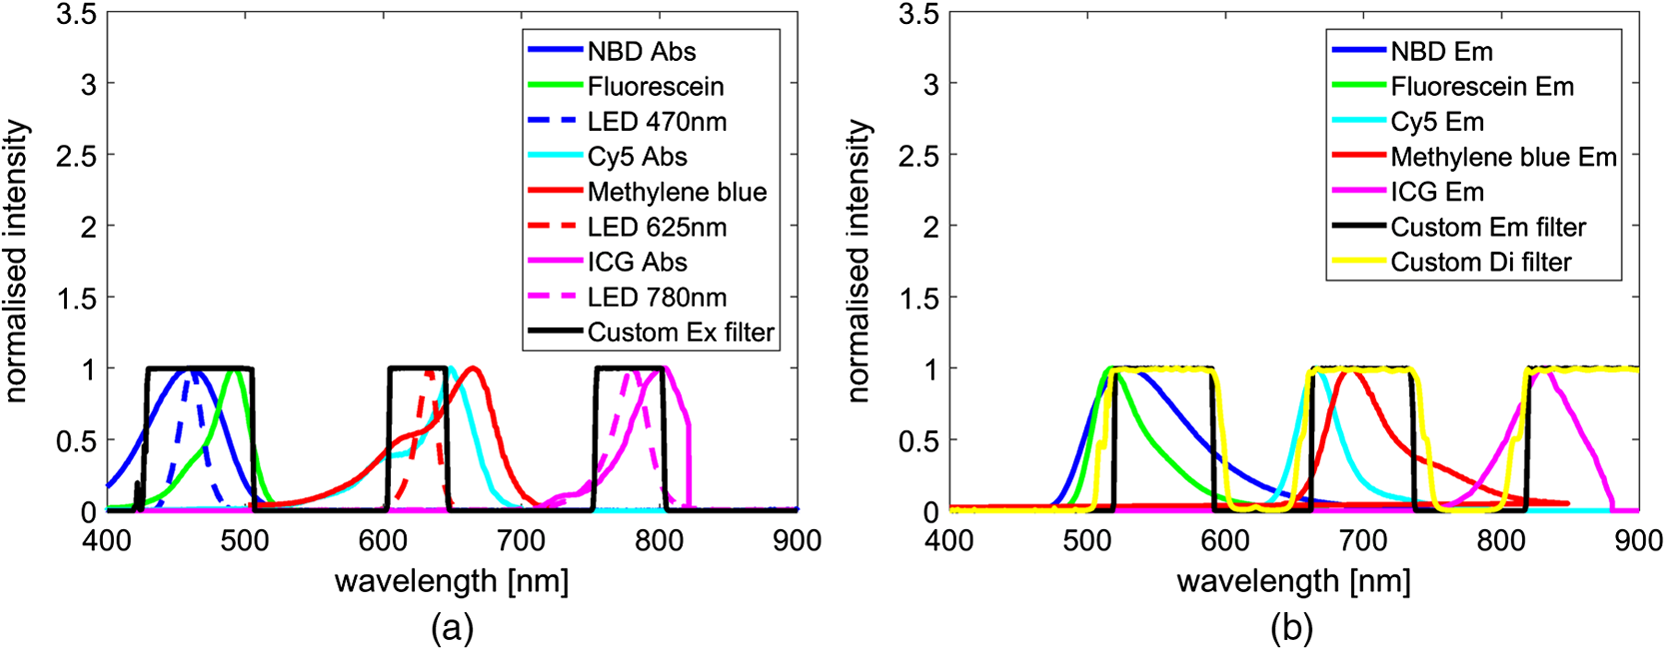 Low Cost High Sensitivity Pulsed Endomicroscopy To Visualize Colour They Emit During Normal Operation A Basic Sensor Can Be And Stop Bands For The Custom Three Color Emission Filter Dichroic Are Shown Along With Curves Of Representative Fluorescent Dyes